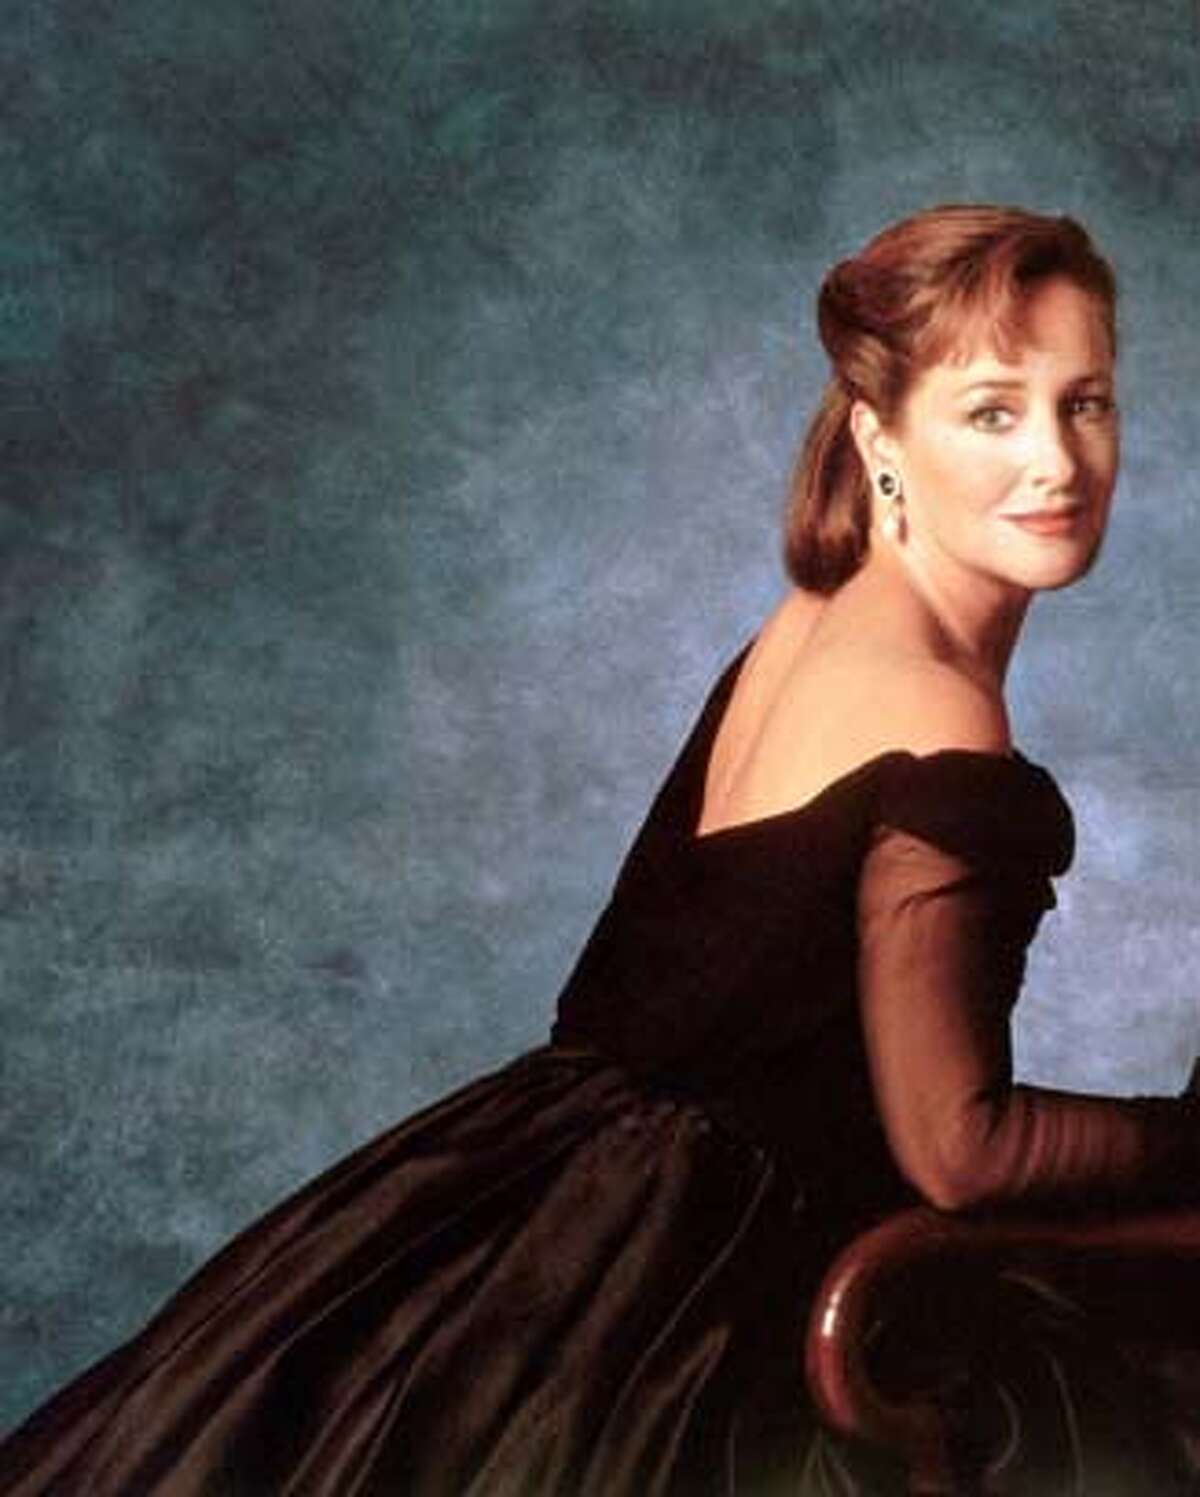 Publicity photo of mezzo-soprano Frederica von Stade for use as backup art for Kosman story. HO Ran on: 10-25-2006 Mezzo- soprano Frederica von Stade will sing today at the Oakland City Center Plaza Stage.